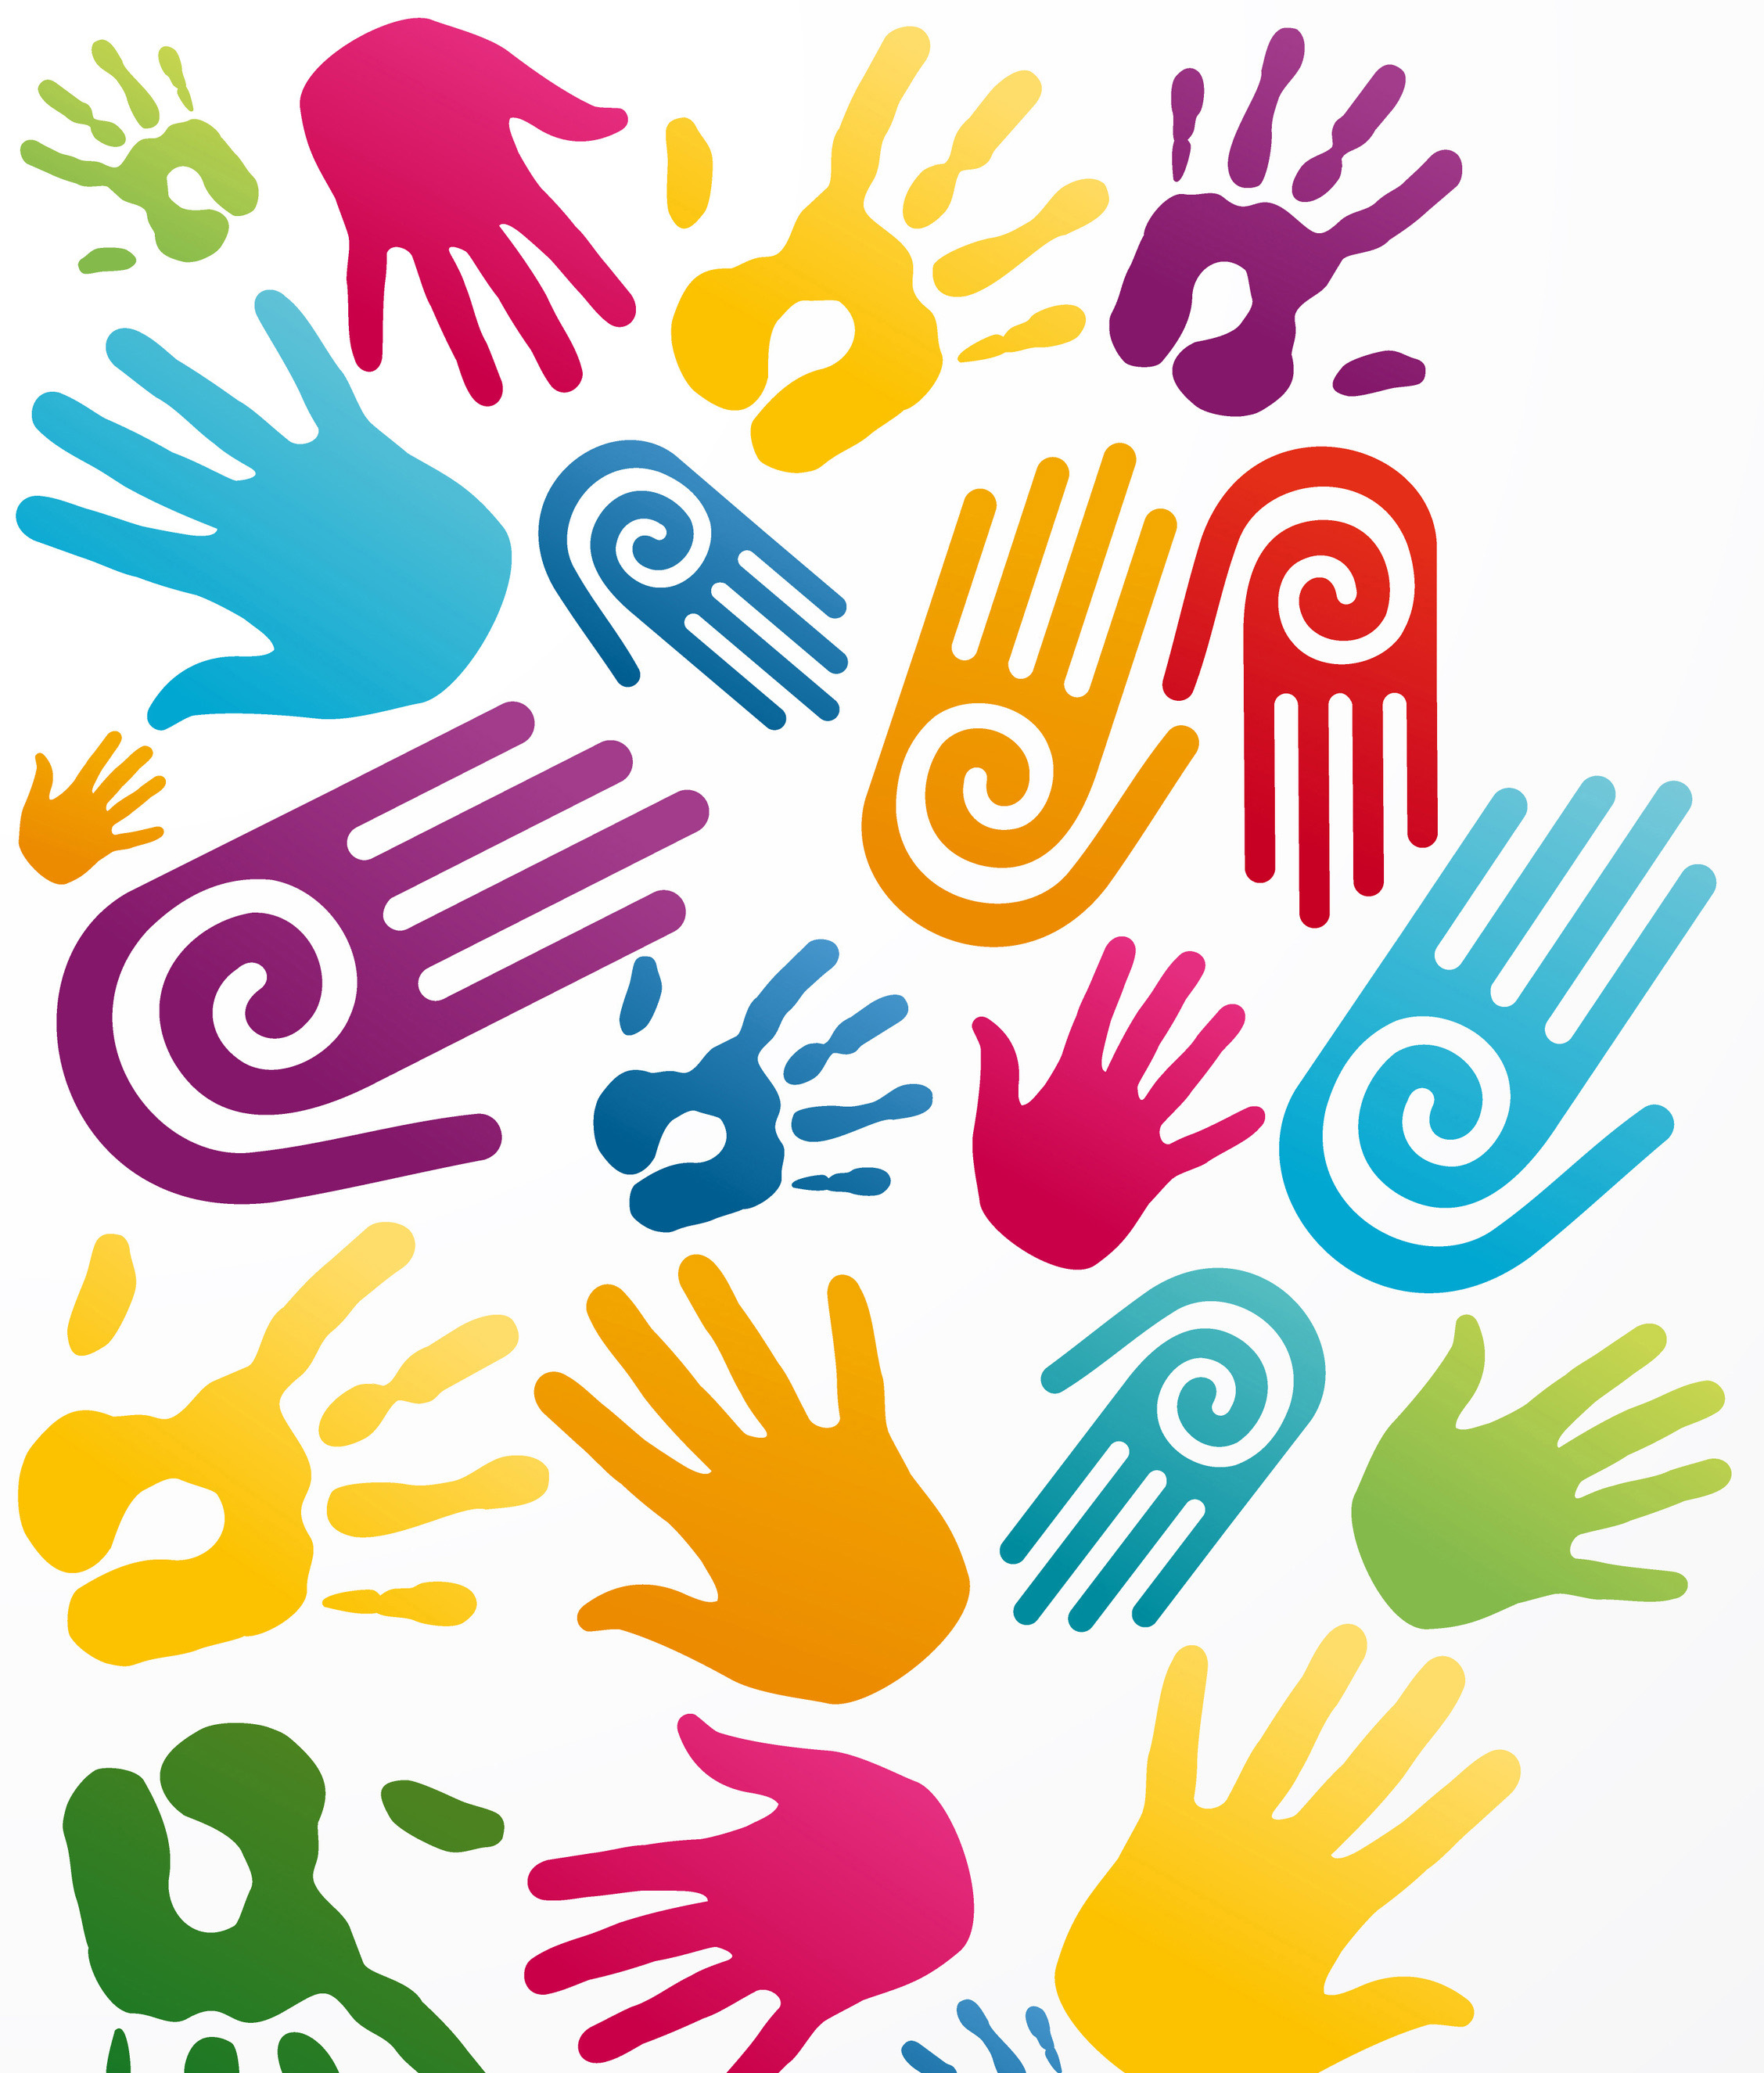 Website_Diversity colors human hand© cienpiesnf-1.jpg